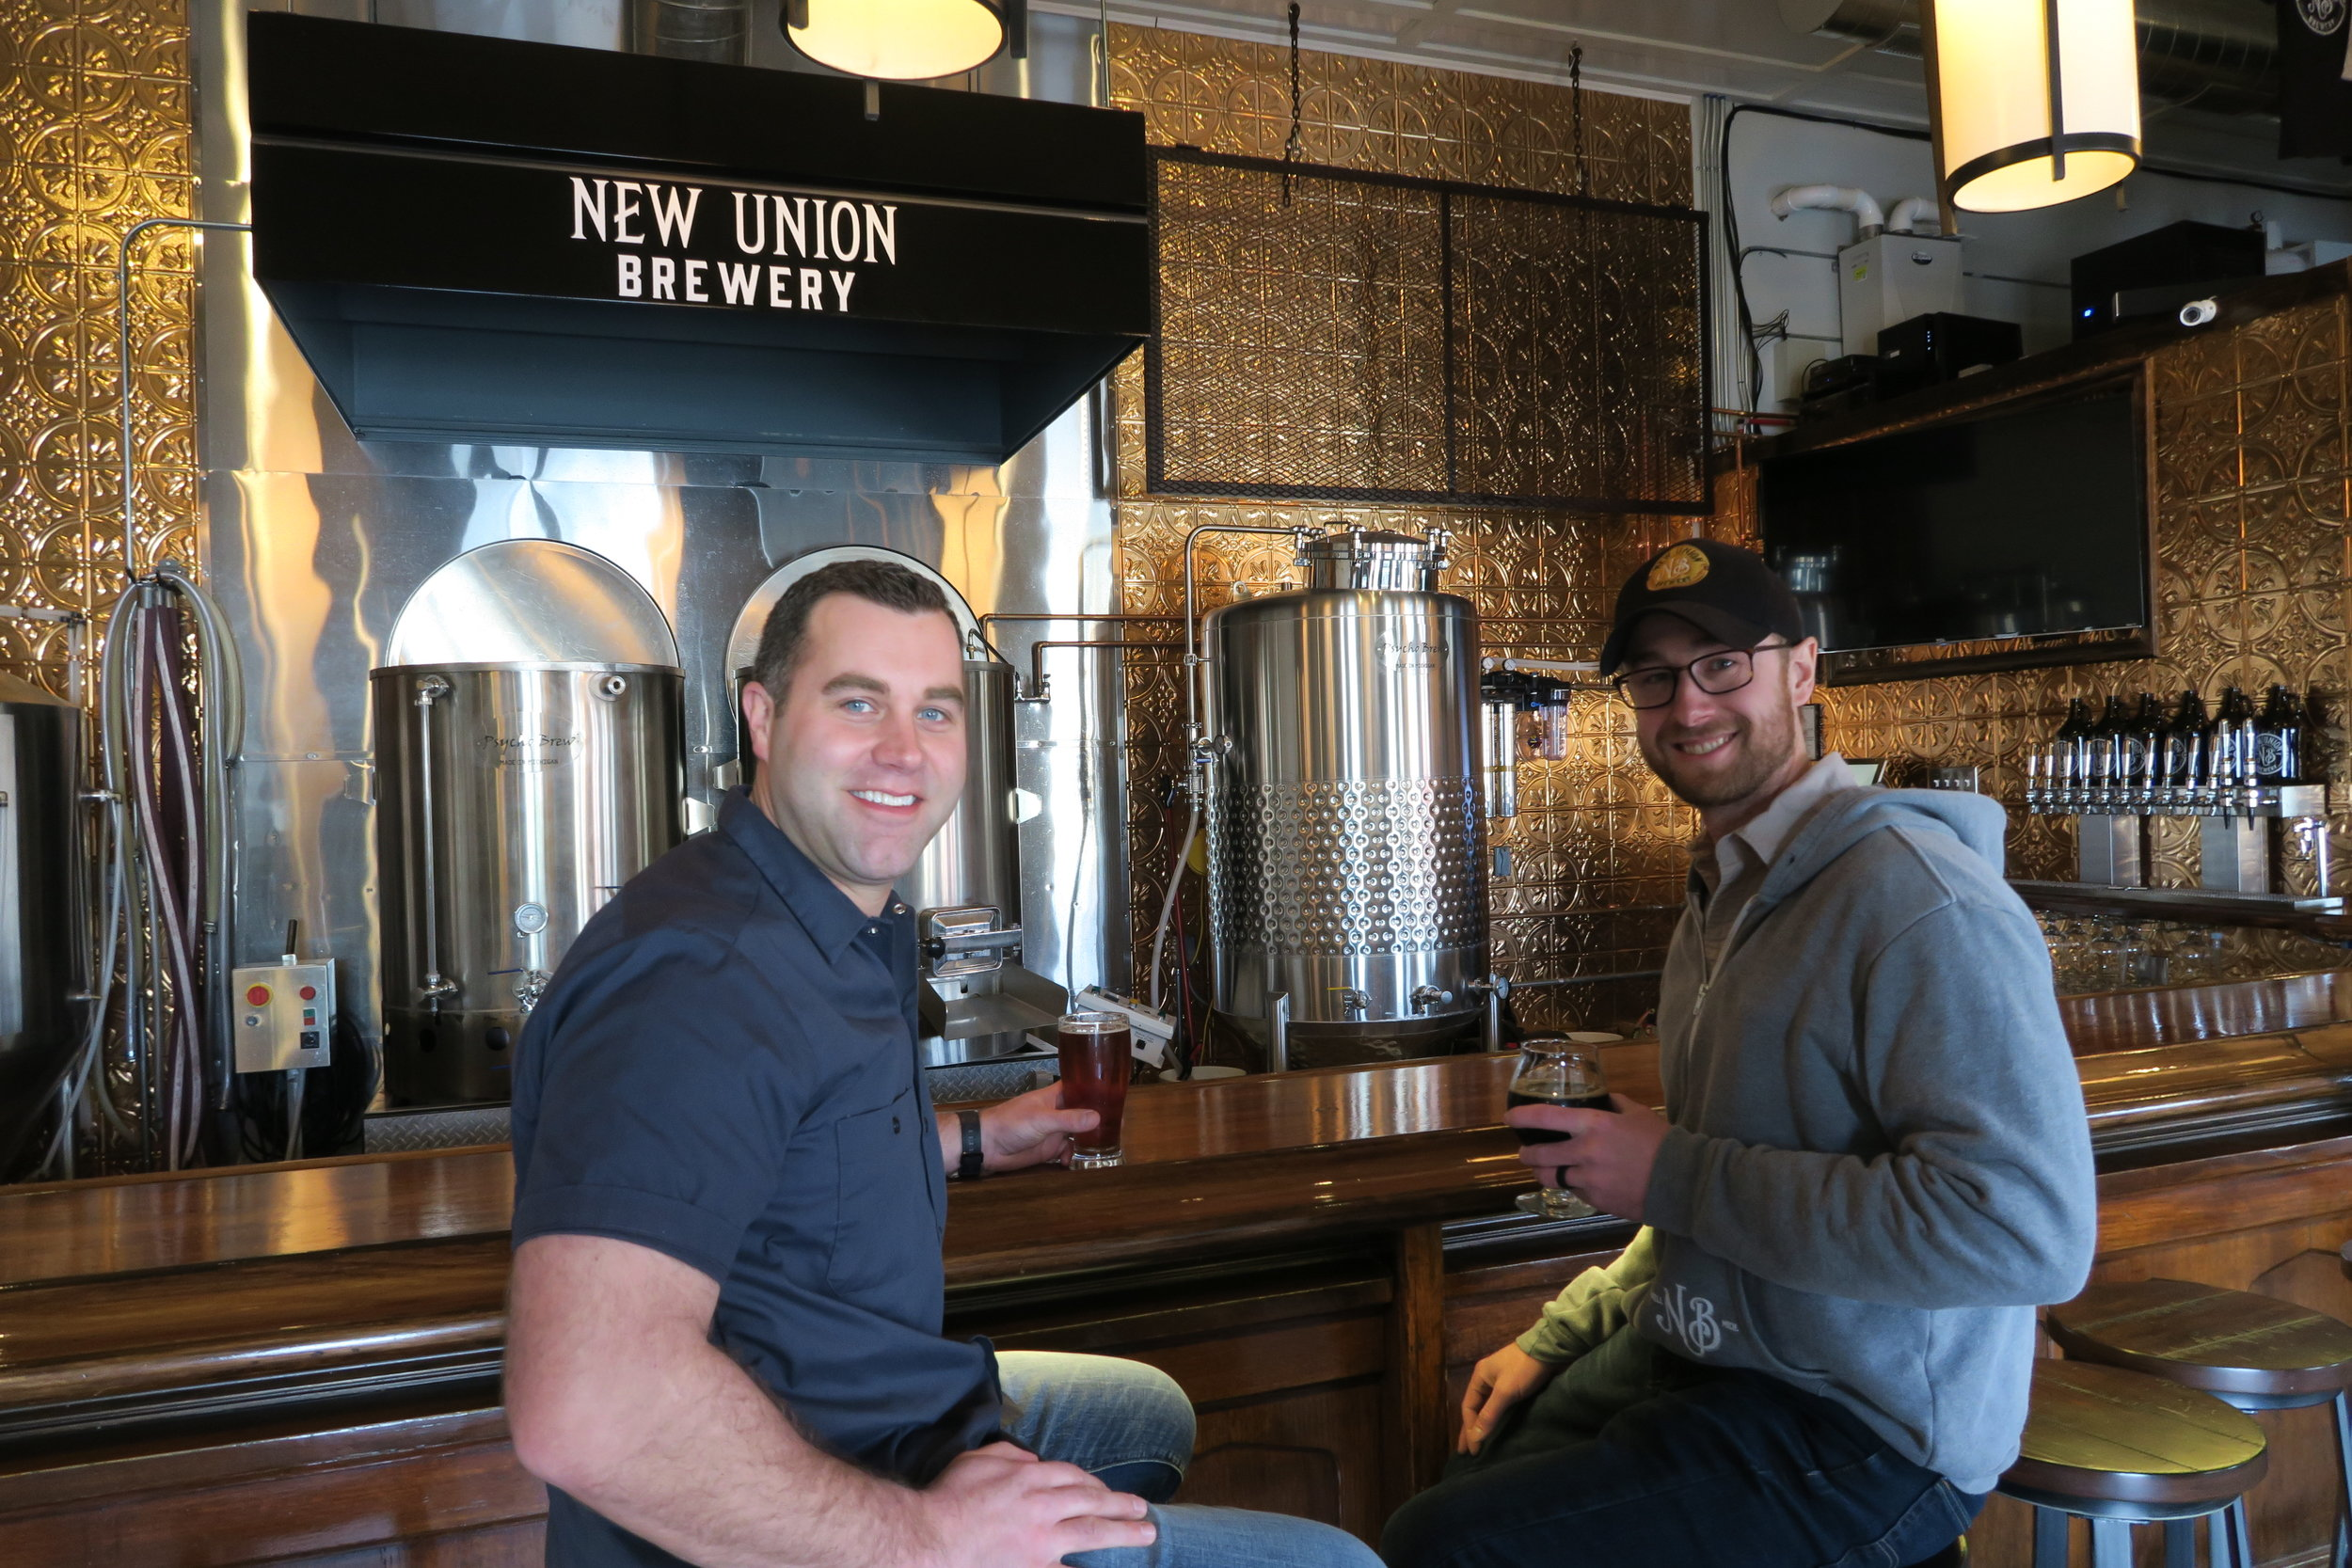 yler Velting and Ryan Stoepker, co-owners of New Union Brewery